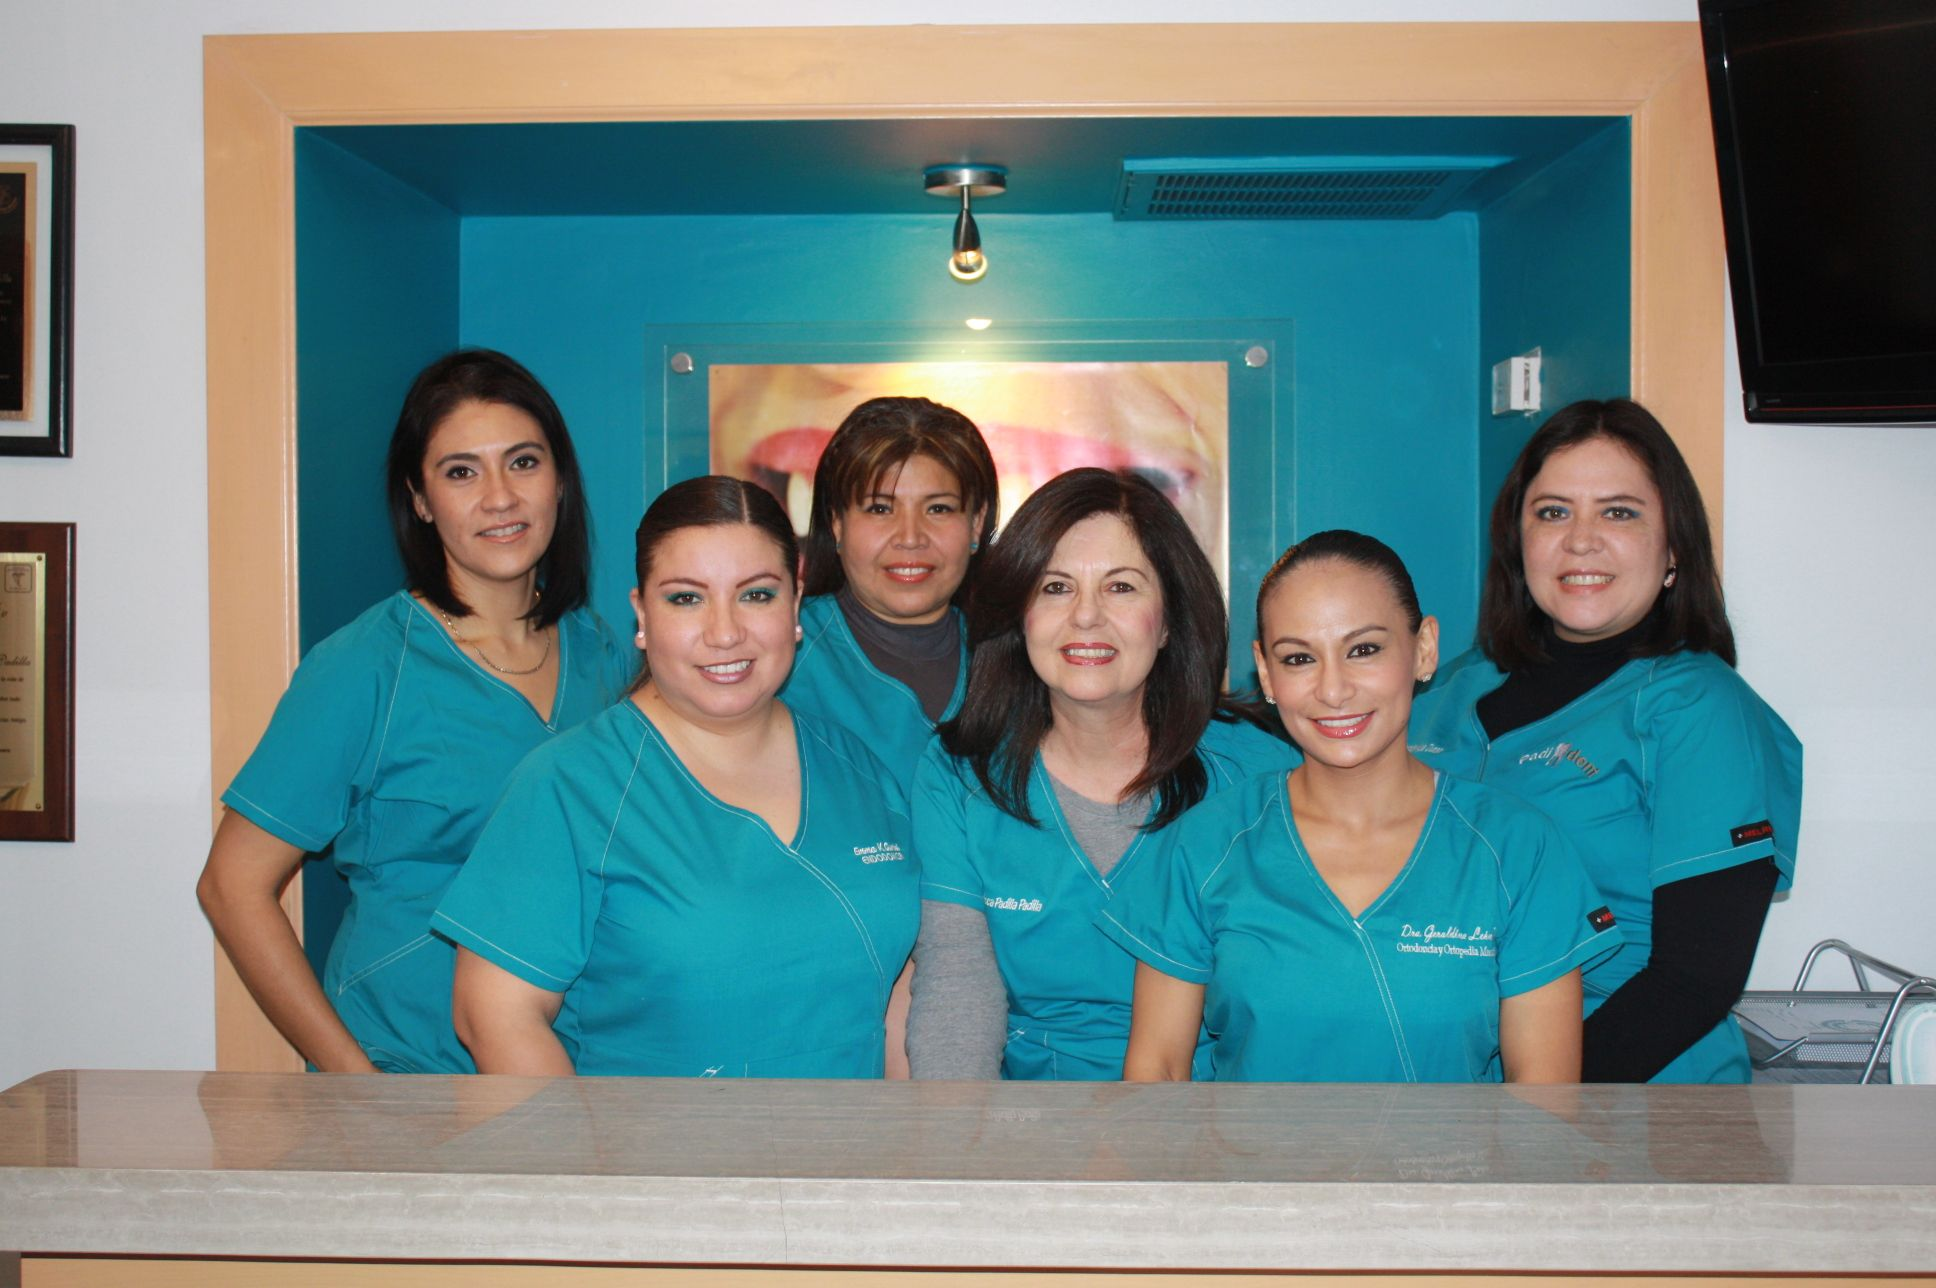 Padident is a fullservice dental practice, conveniently